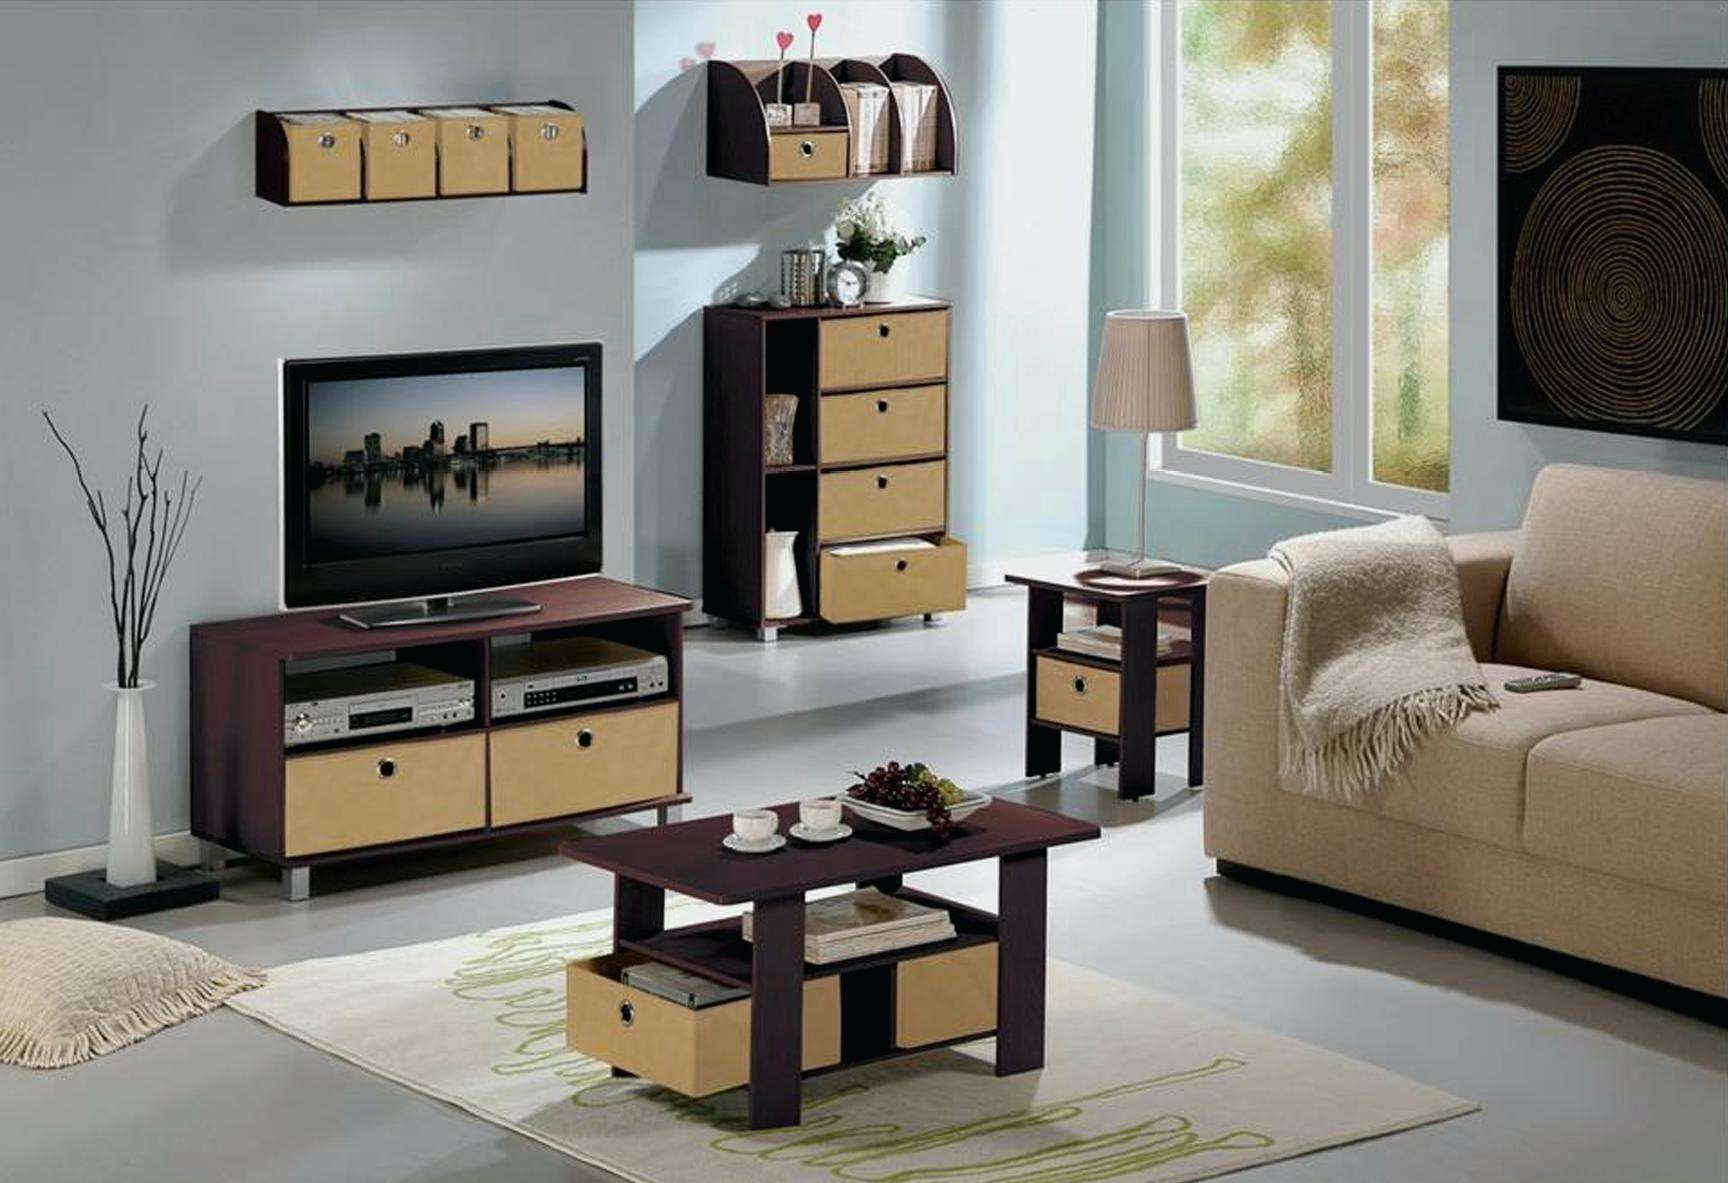 Coffee Table And Tv Stand Set – Akiyo With Regard To Popular Tv Stand Coffee Table Sets (View 8 of 20)